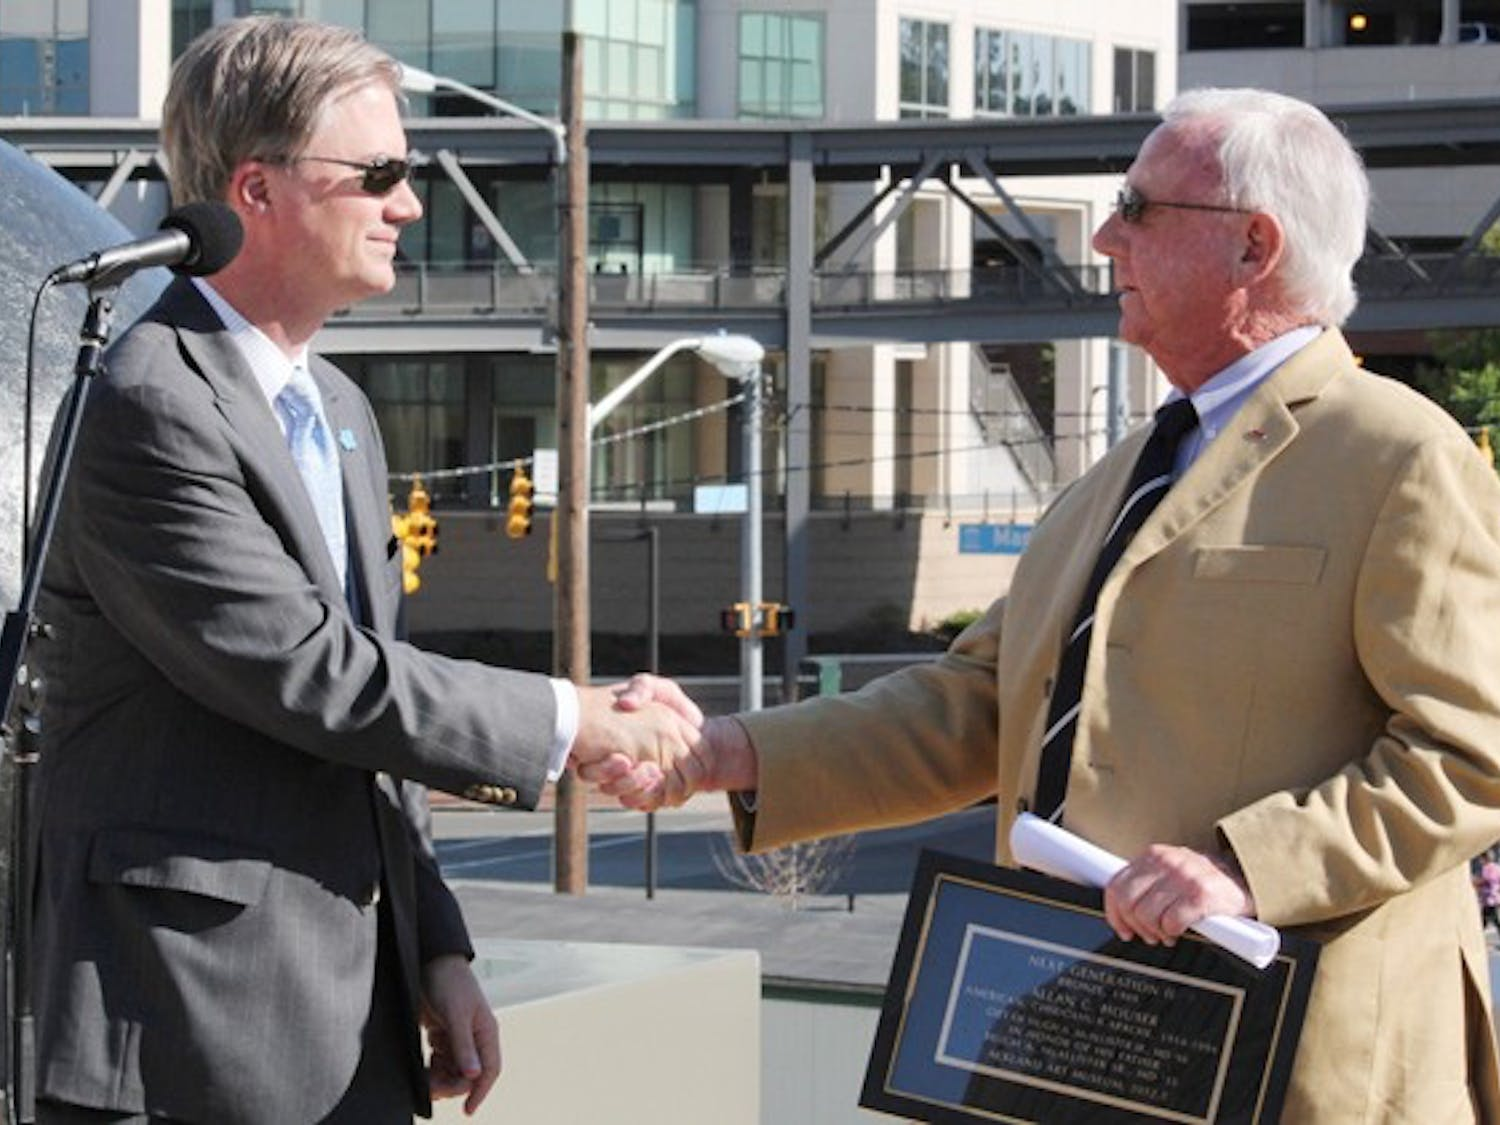 Holden Thorp shakes hands with UNC alumna Dr. Hugh A. McAllister Jr. who donated $10 million to UNC for the Ackland Art Museum  and the School of Medicine.